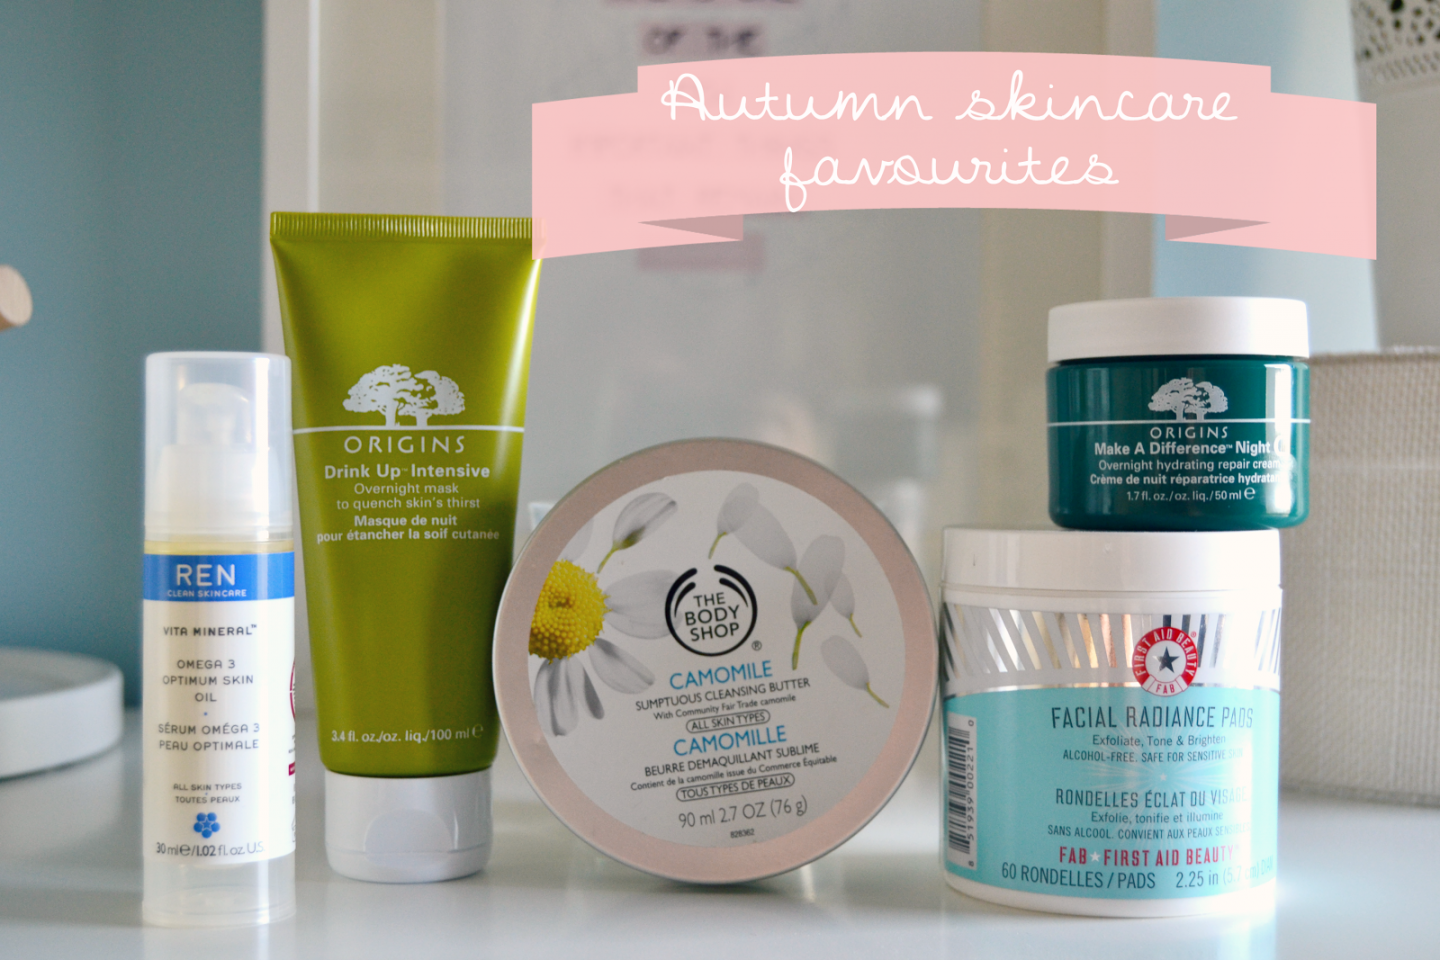 Autumn favourites skincare